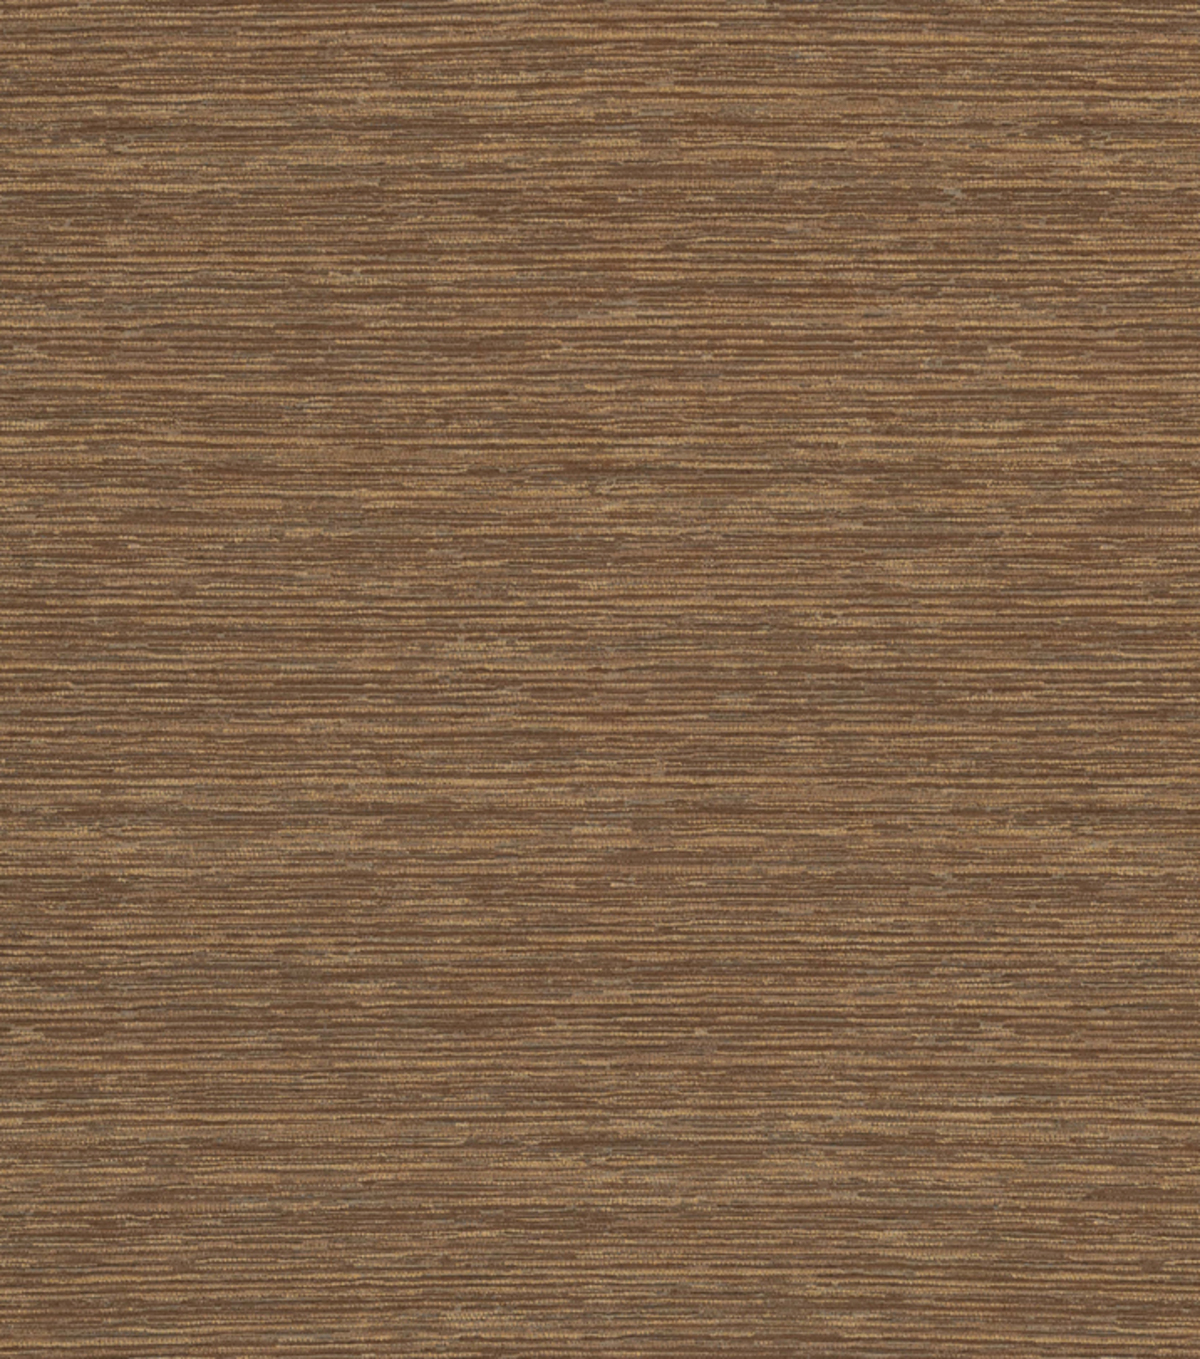 Home Decor 8\u0022x8\u0022 Fabric Swatch-Caledonia Pecan